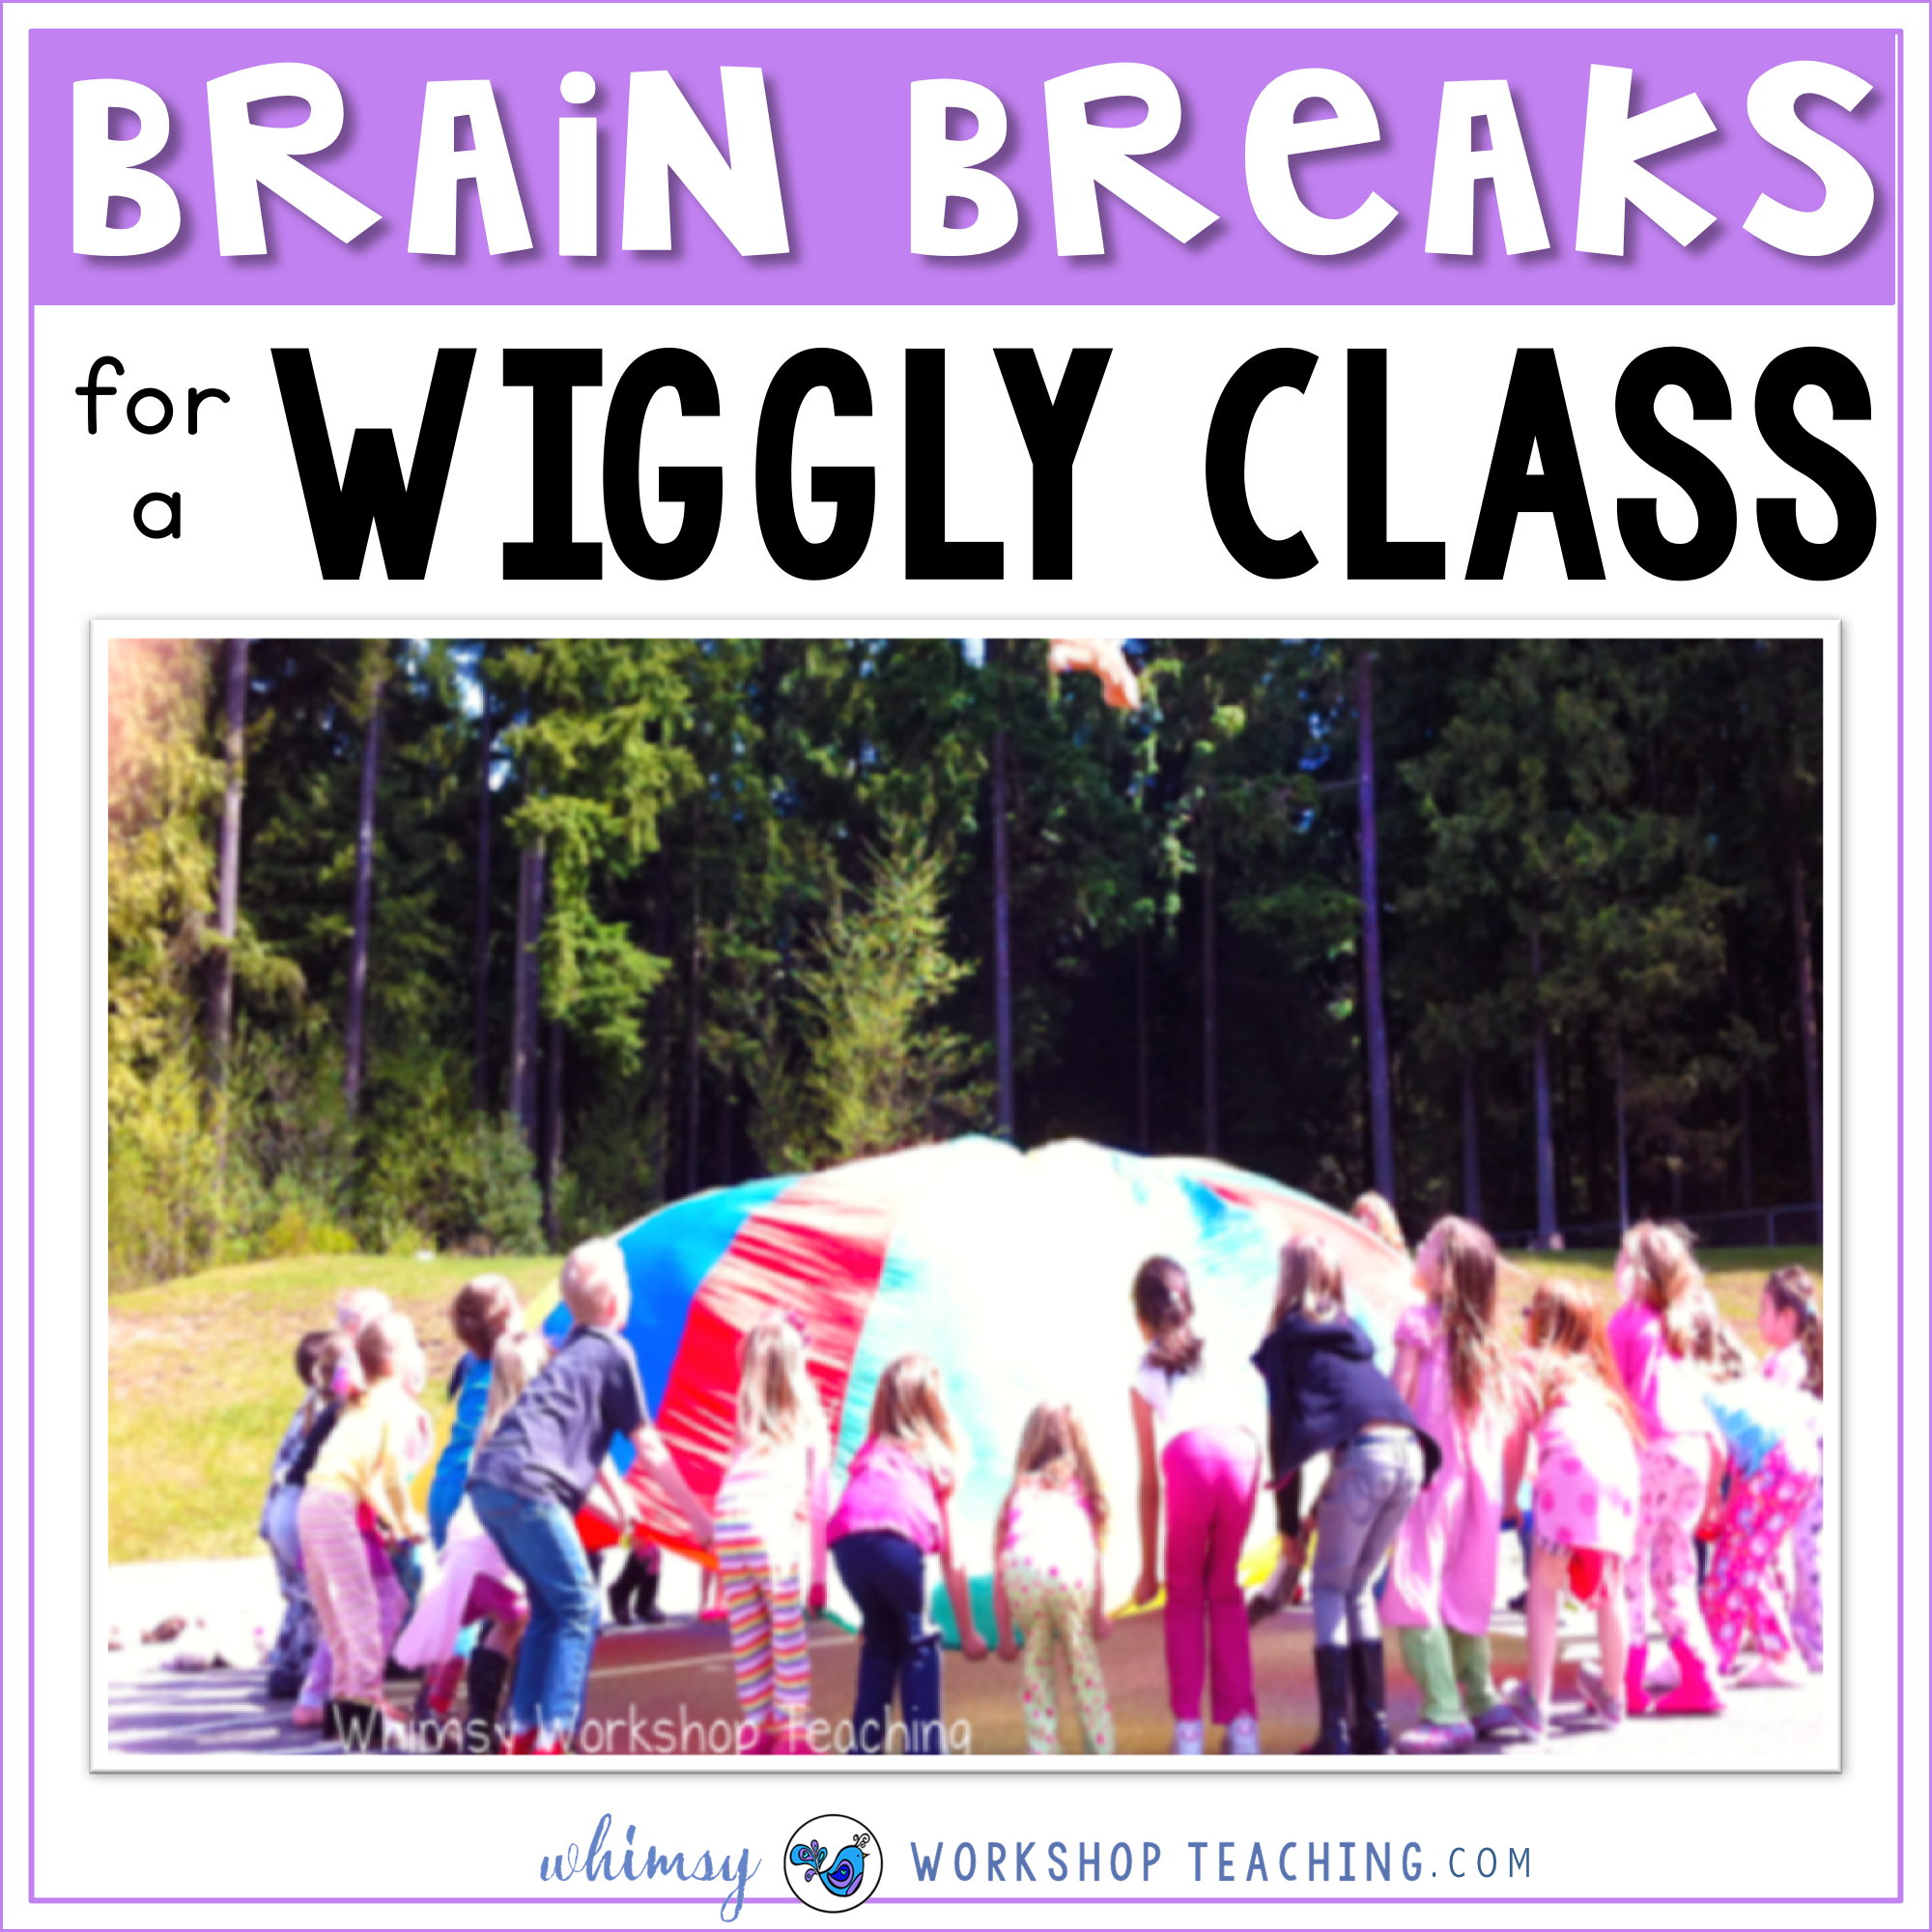 Brain breaks for a wiggly class - strategies and ideas